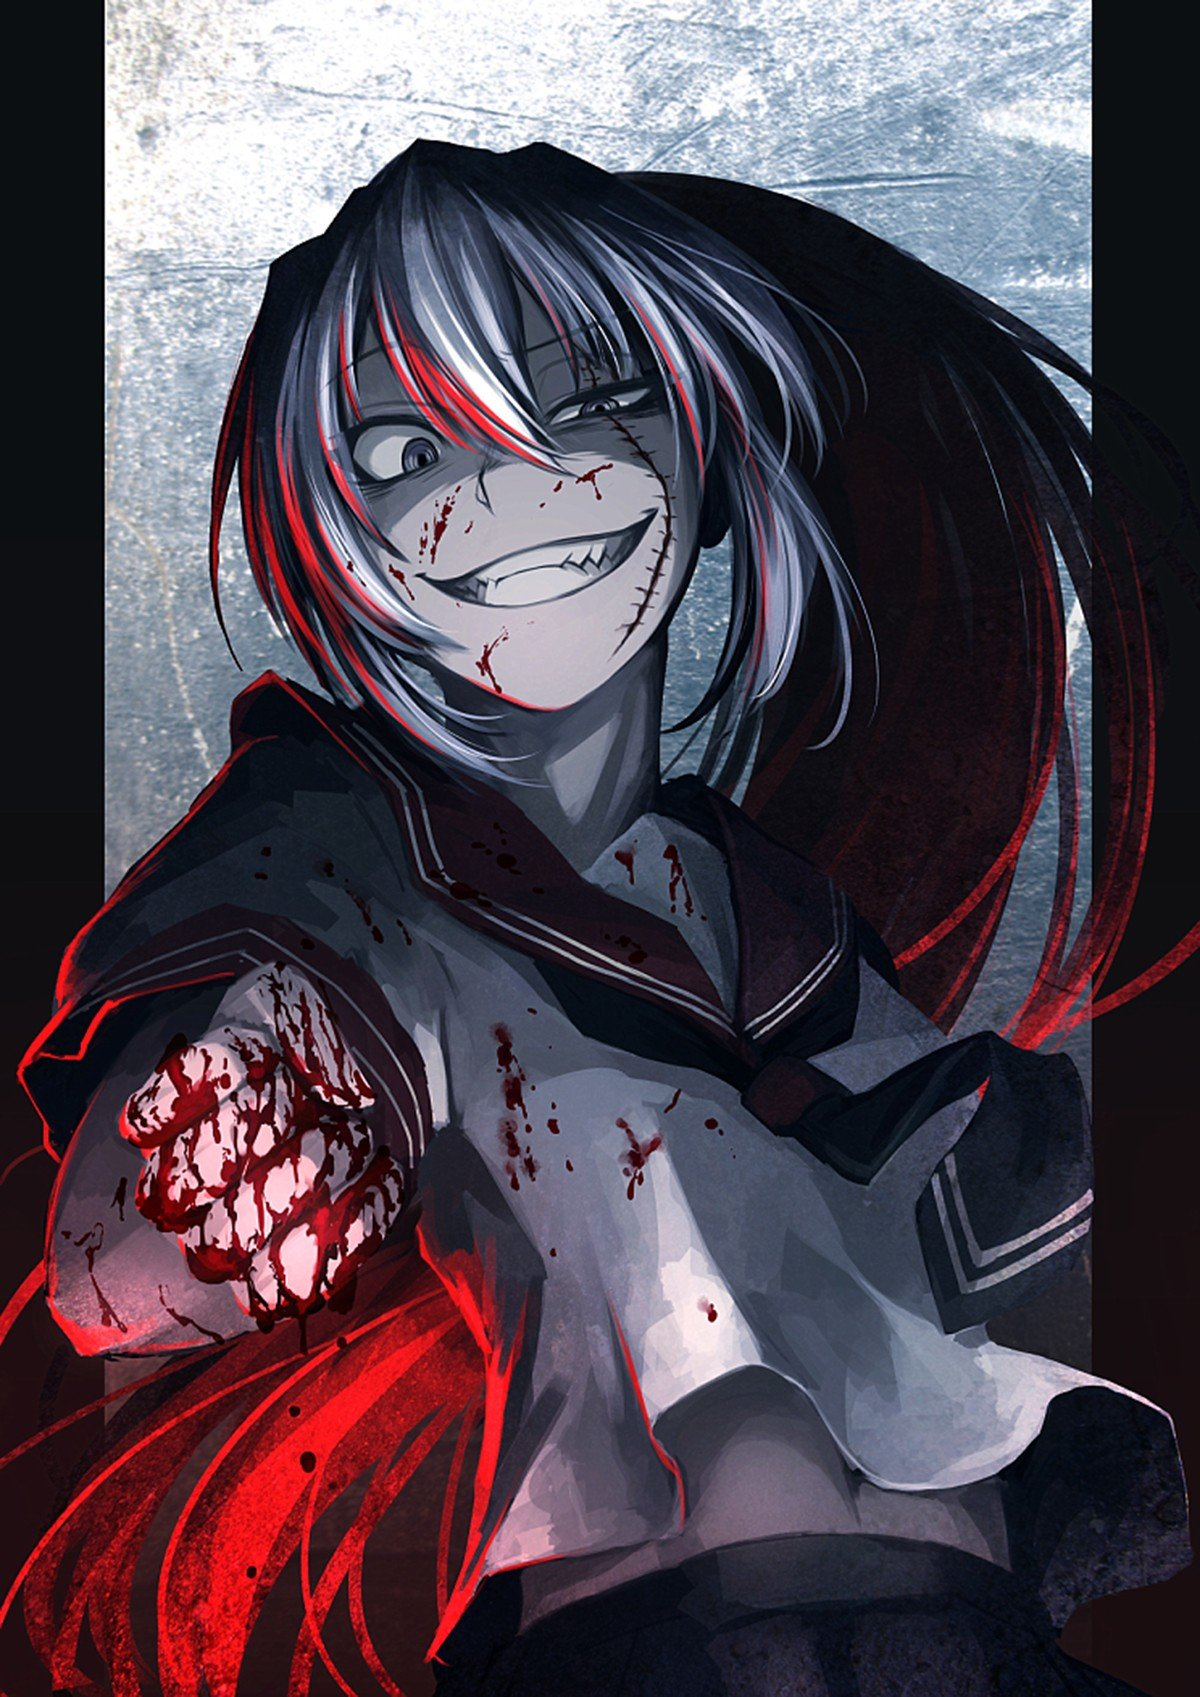 Akuma no riddle hetza hd wallpapers desktop and mobile - Gore anime wallpaper ...